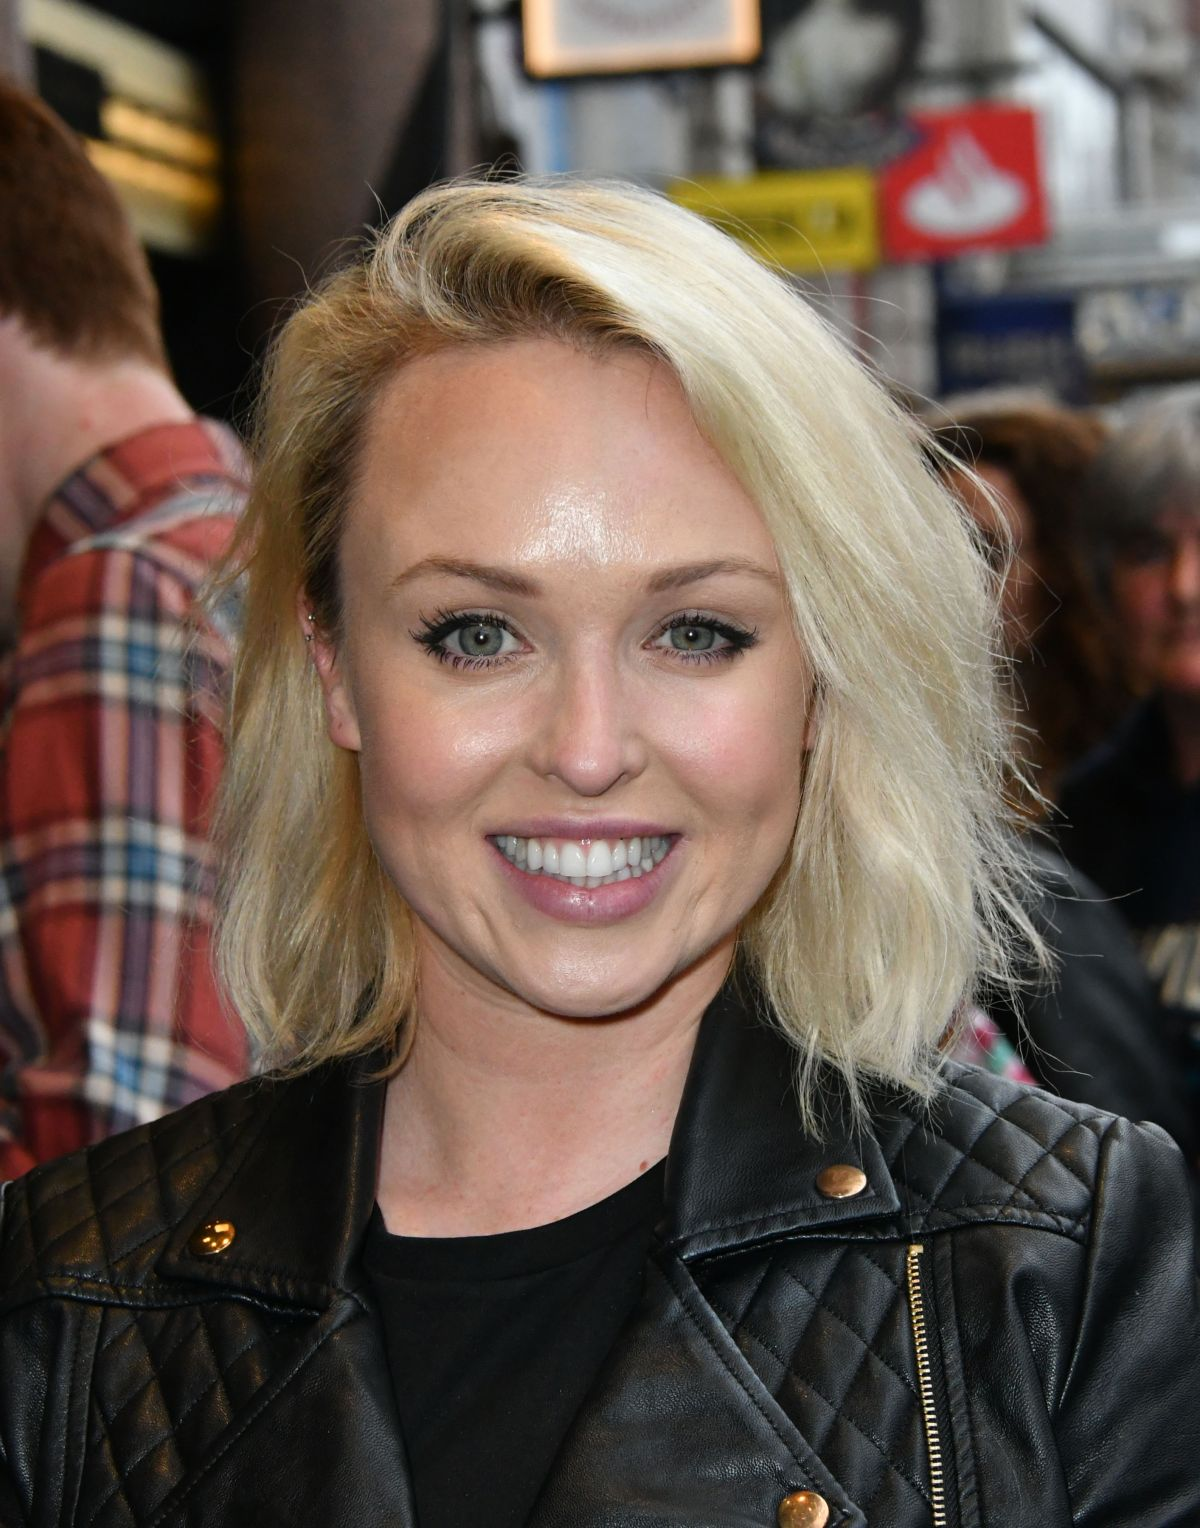 ICloud Jorgie Porter nude (48 foto and video), Sexy, Cleavage, Twitter, braless 2006